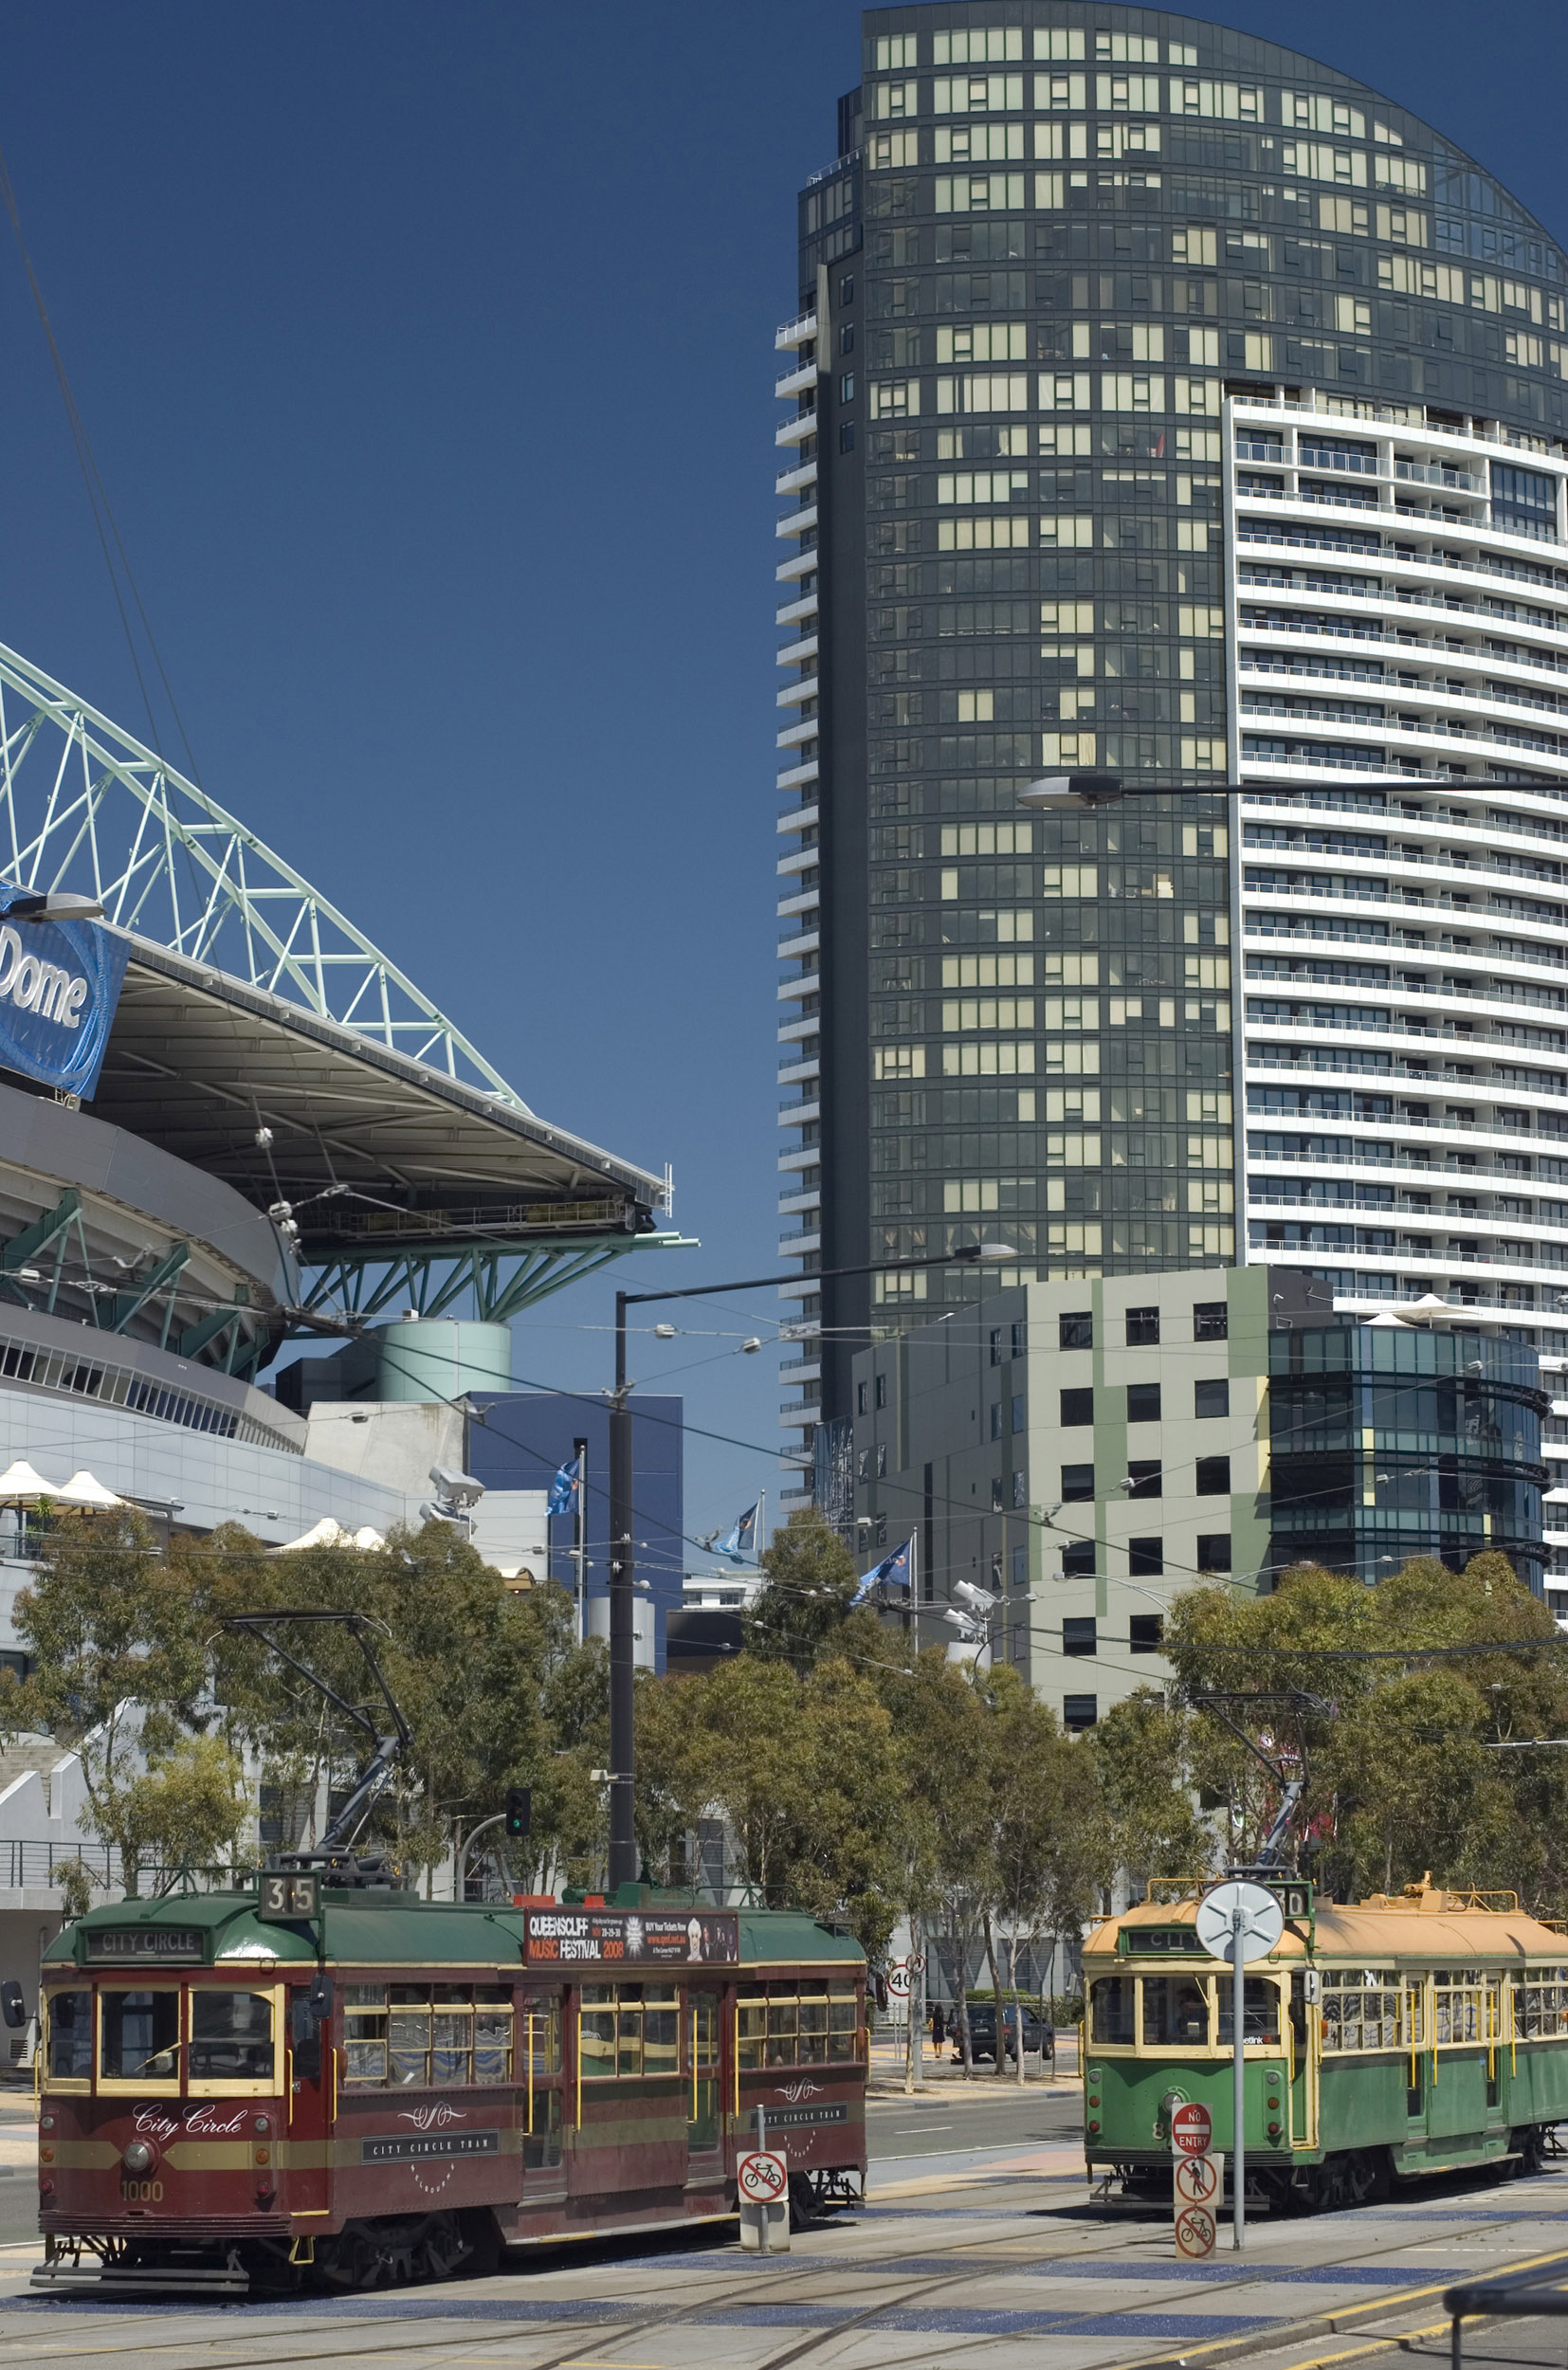 The Telstra Dome in The Docklands, Melbourne, Australia with street trams and a skyscraper in a busy street scene